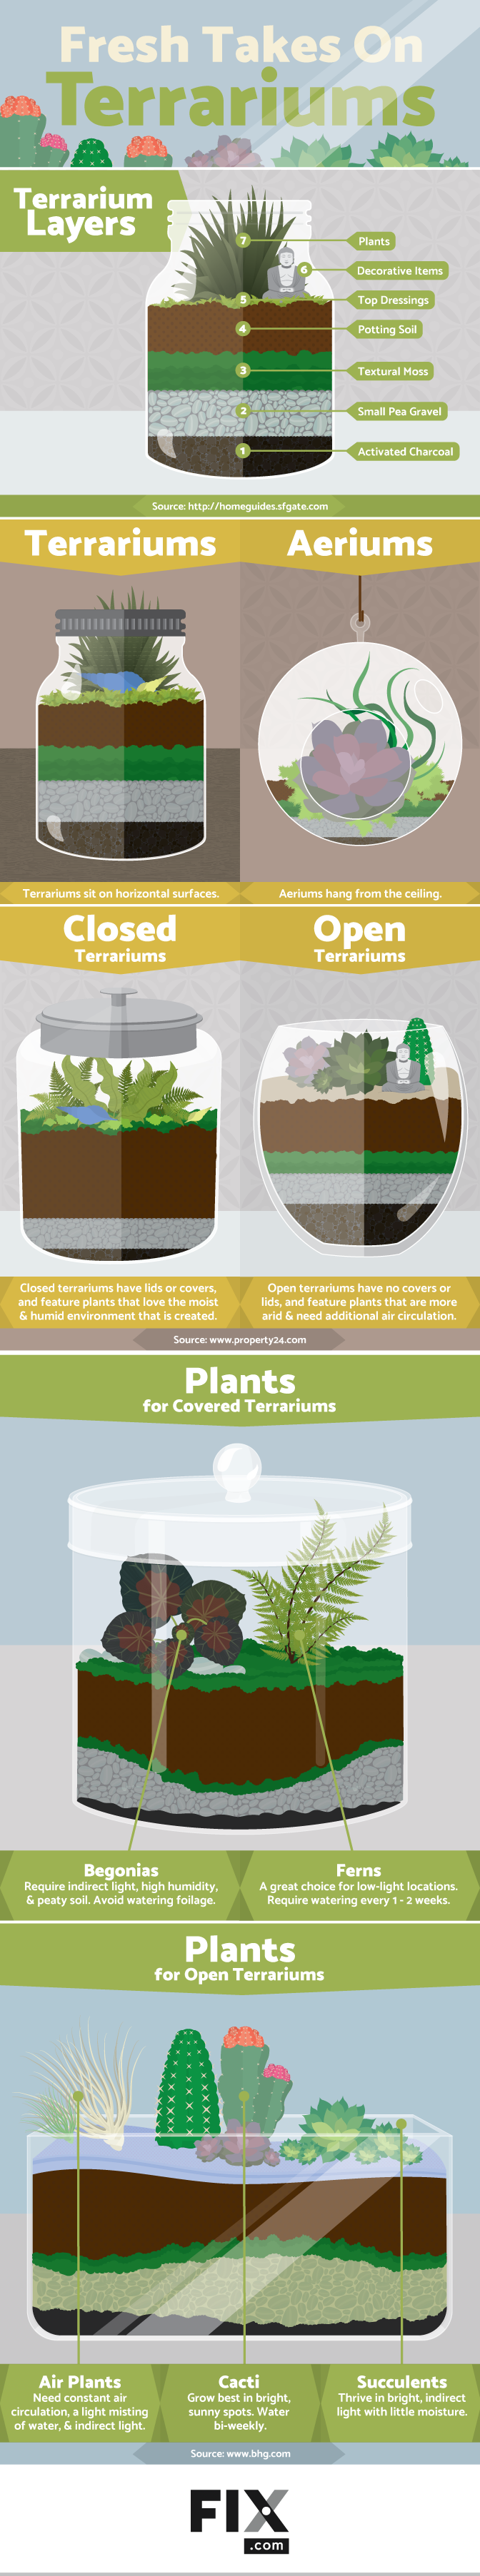 Terrariums Are The Coolest Gardening Garden Terrarium Diy